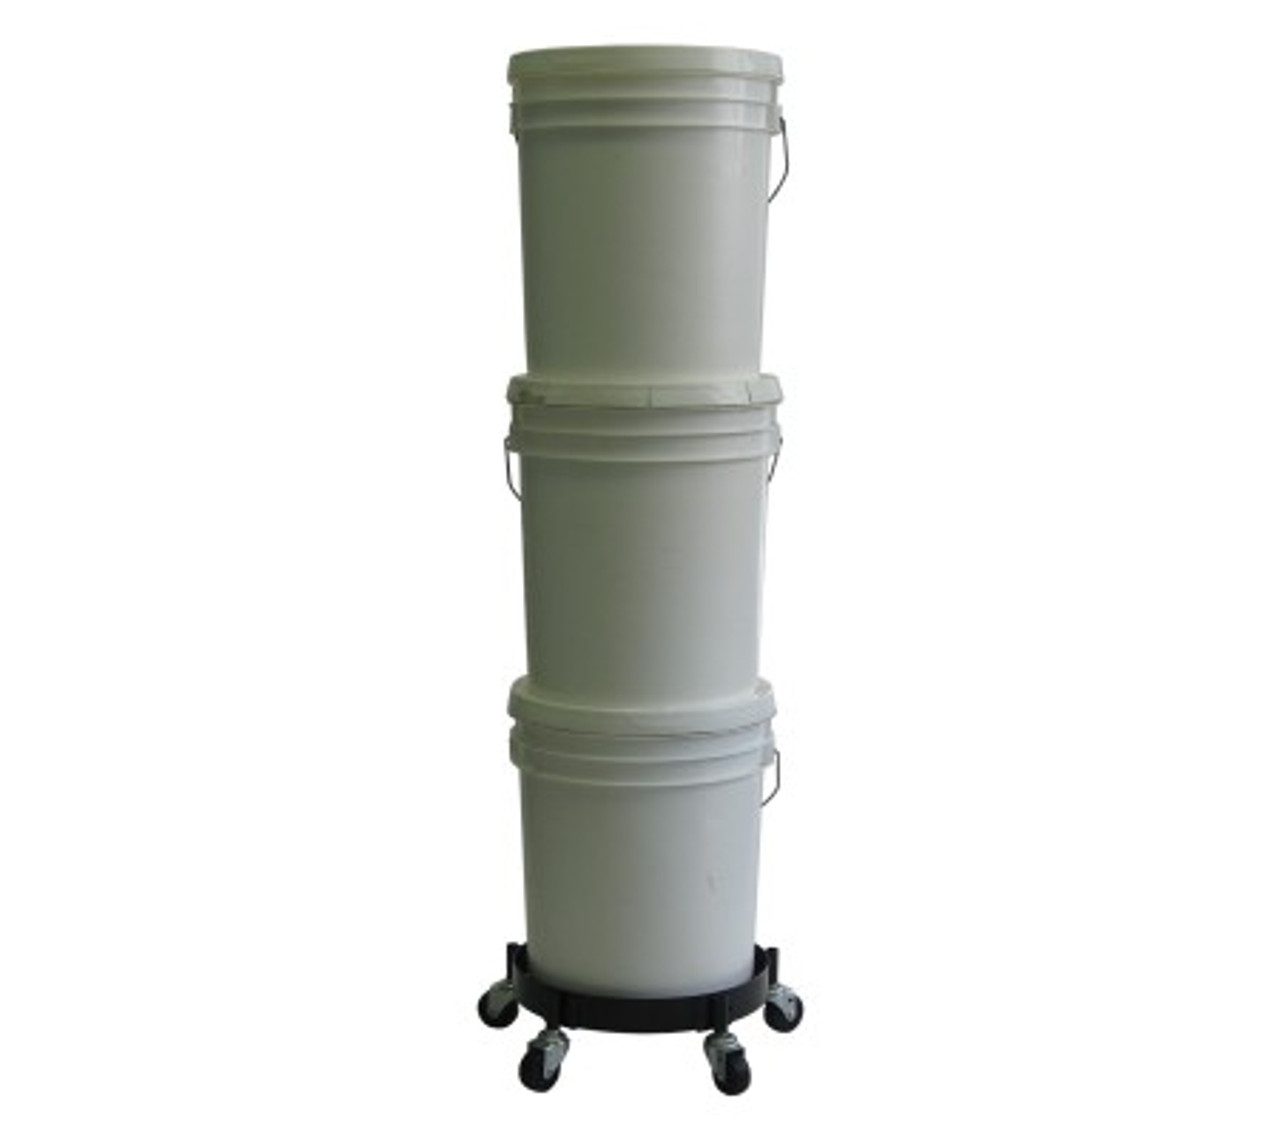 Bucket Dolly for 5 Gallon Pails and Buckets 455 BLS (BUCKETS NOT INCLUDED)